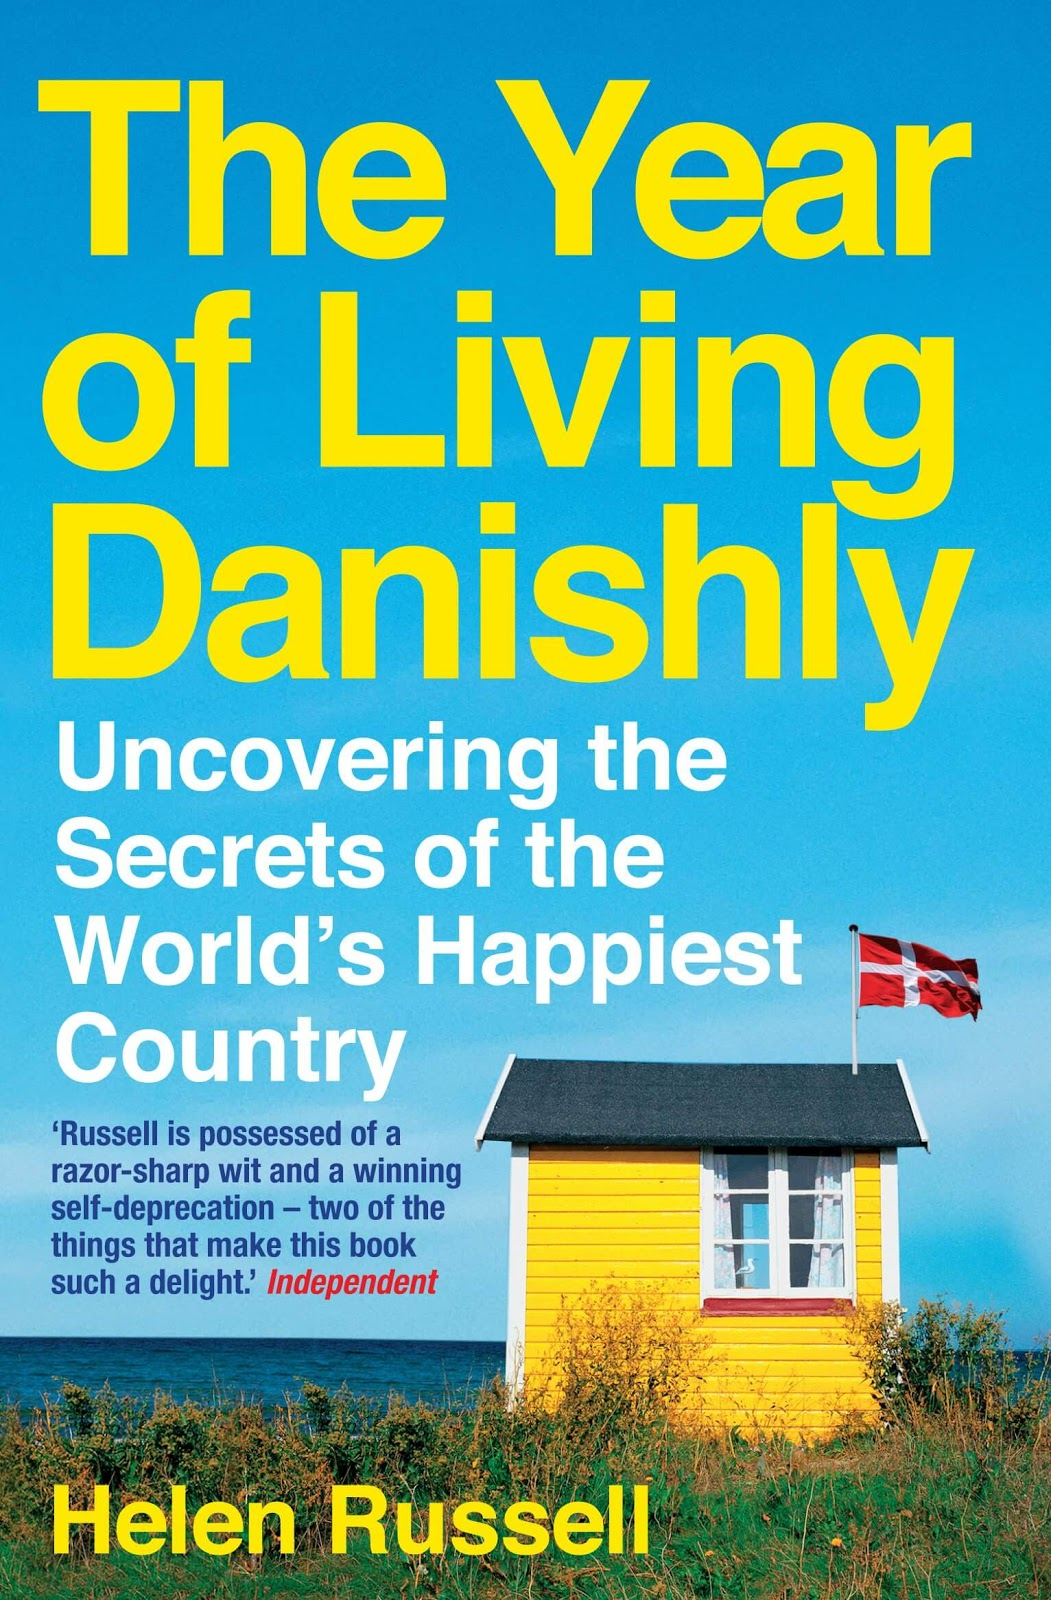 A Year of Living Danishly by Helen Russell